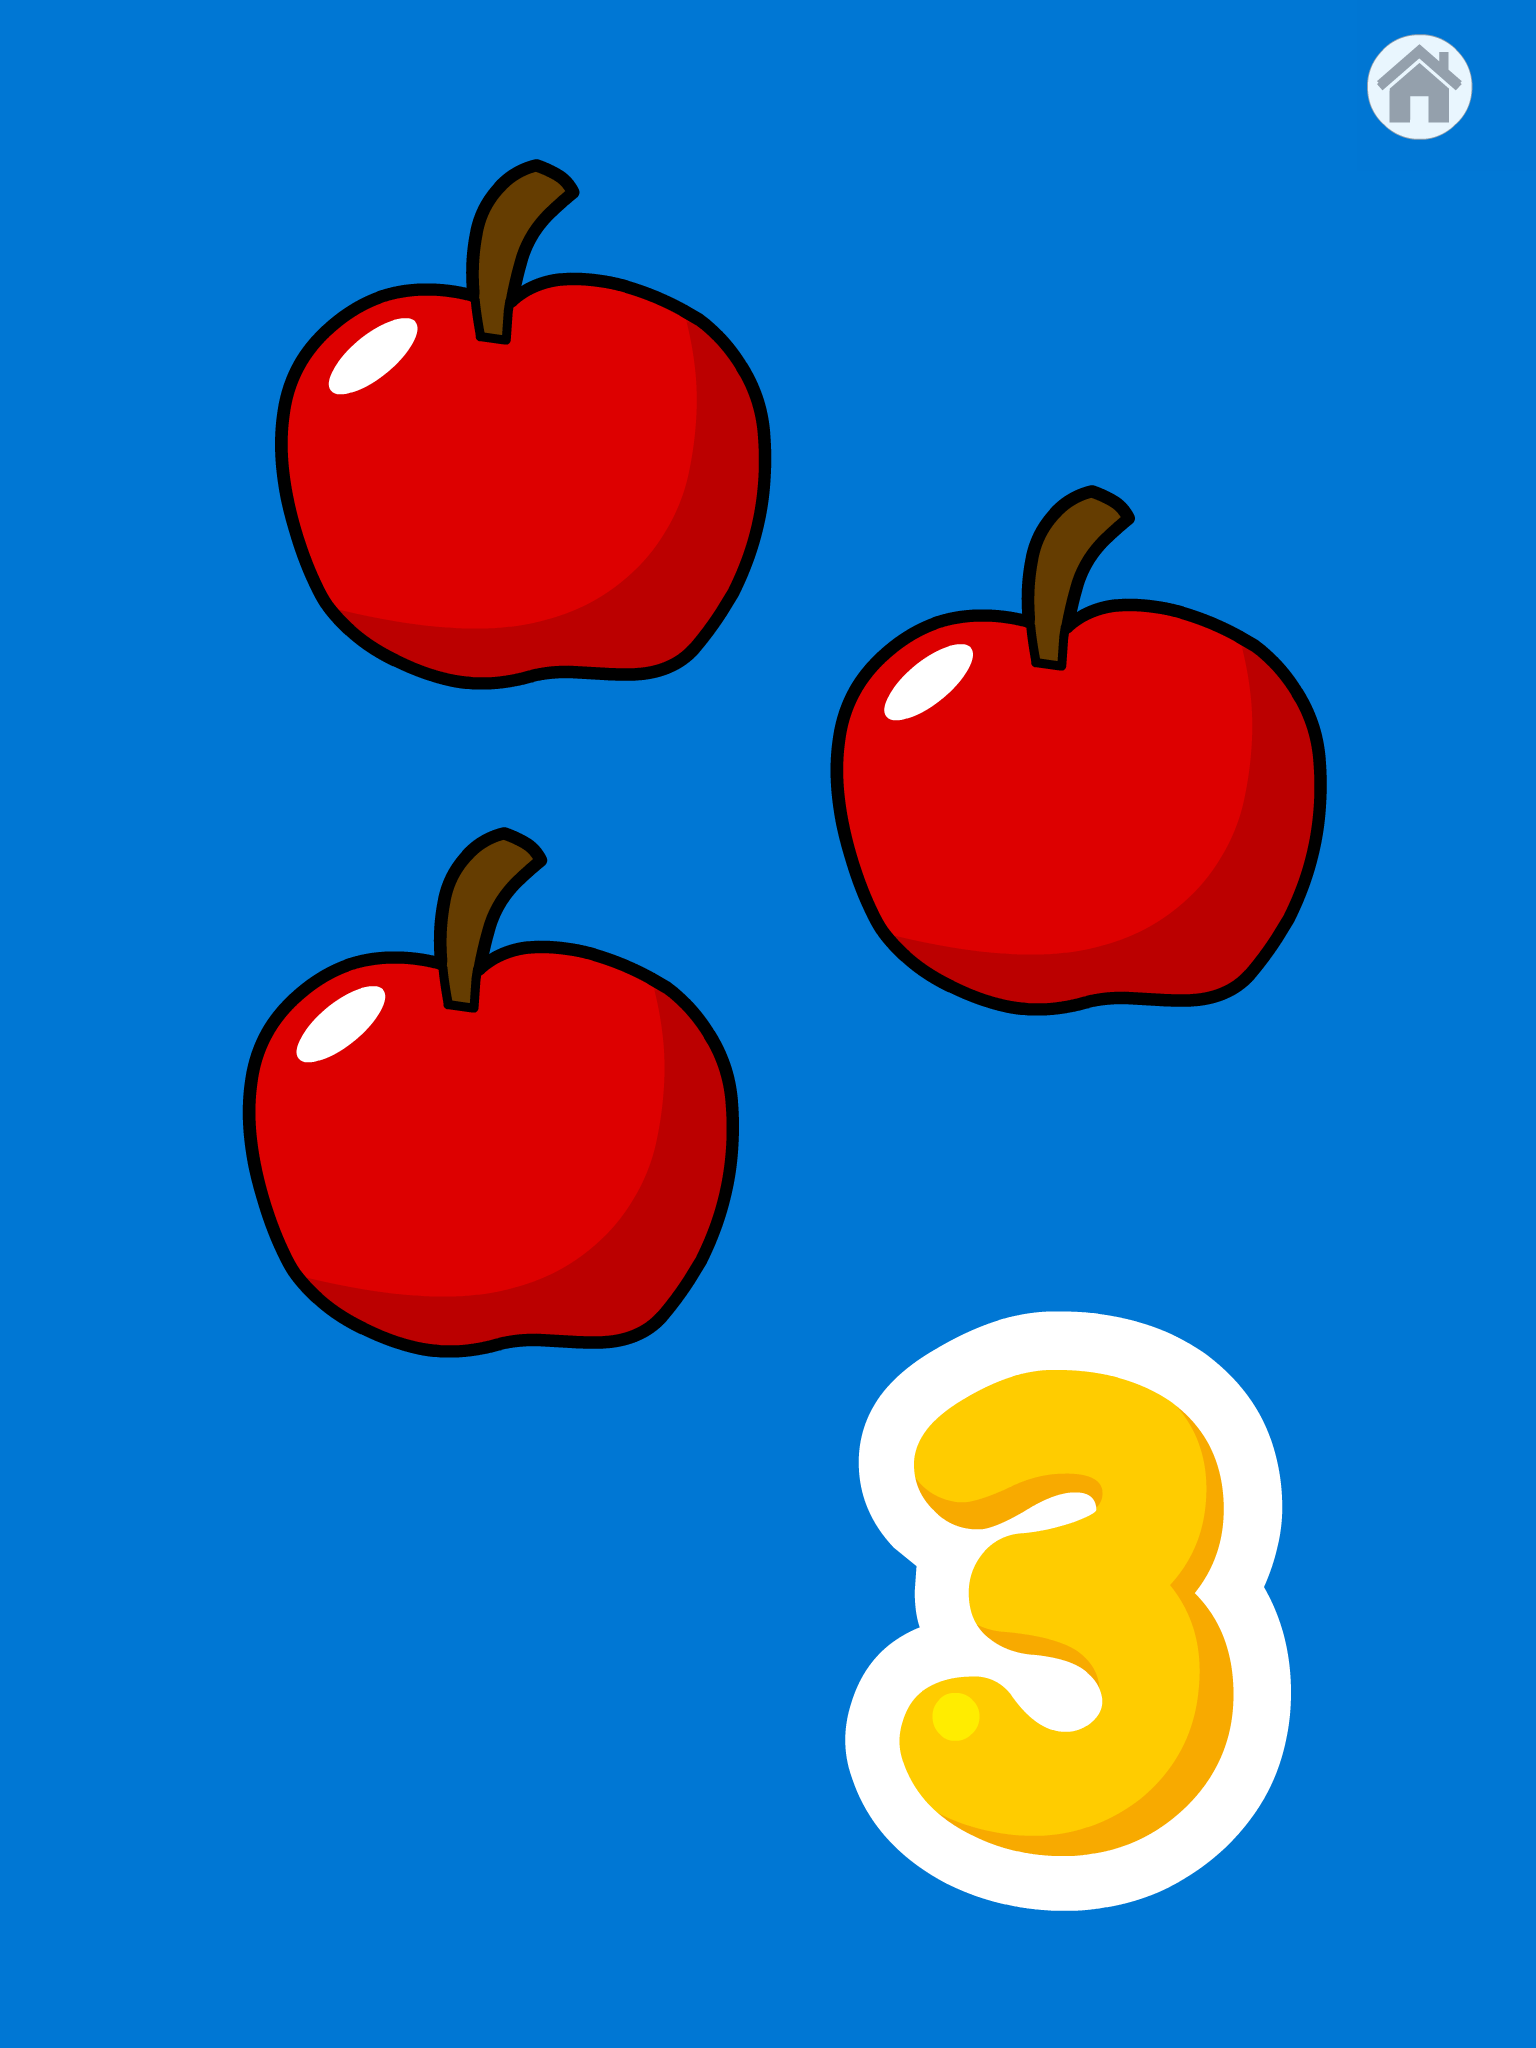 Screenshot of 123 game with 3 red apples and a bold number three.